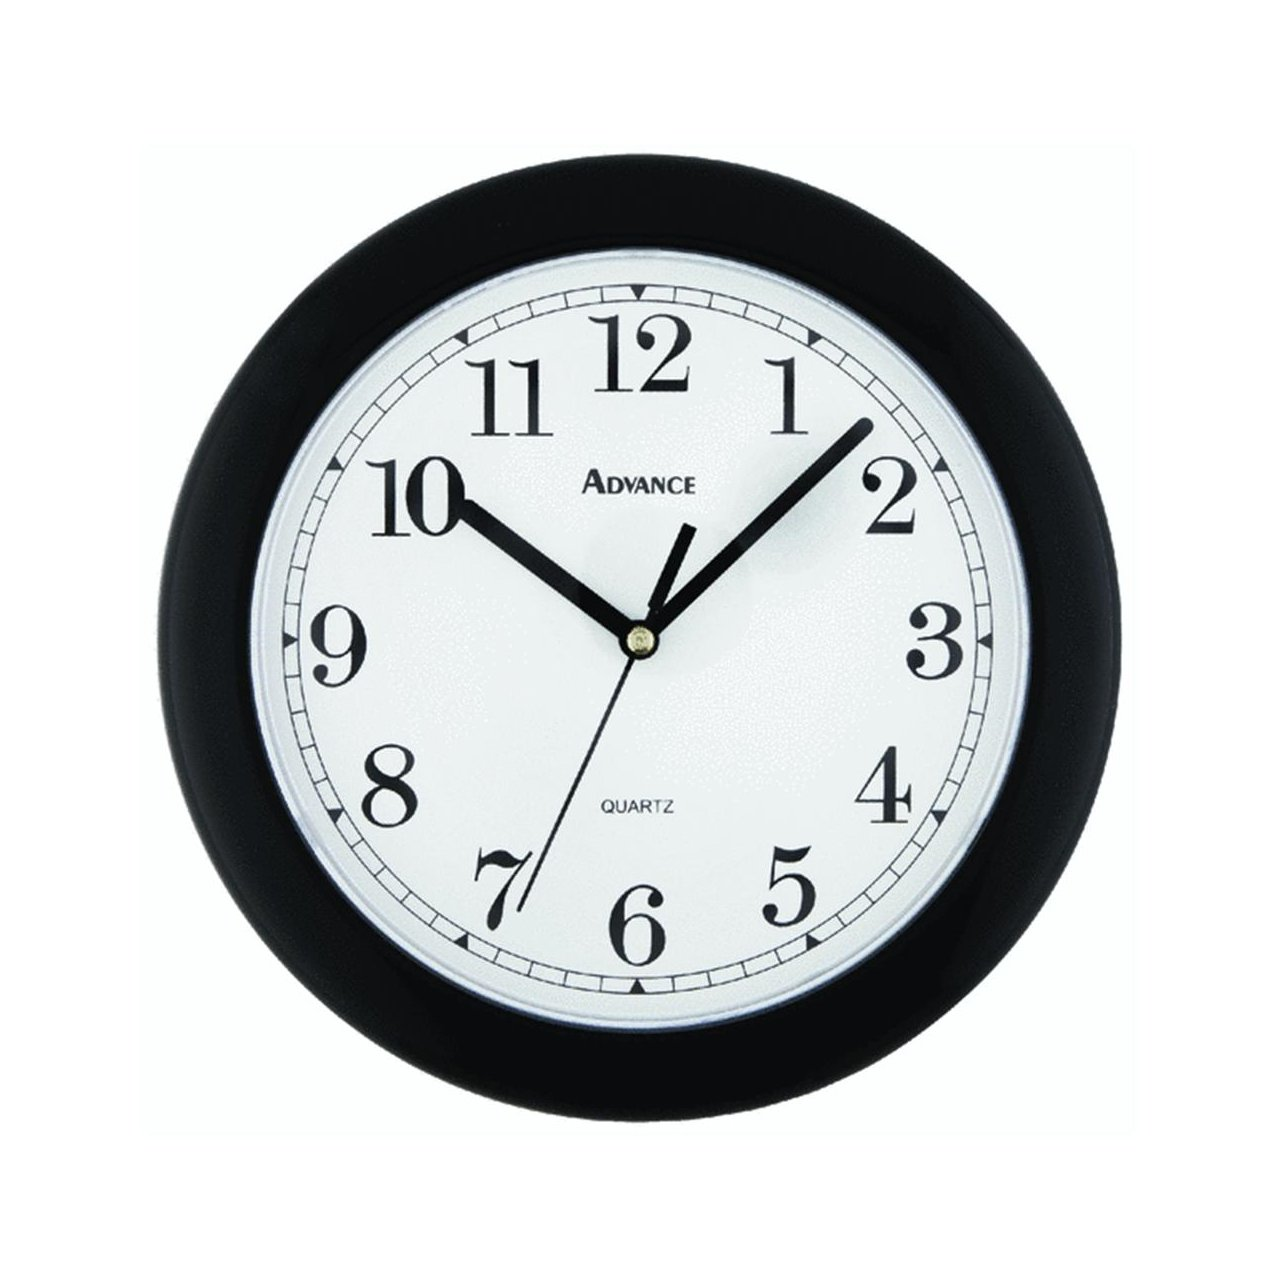 Amazon.com: Wall Clocks: Home & Kitchen